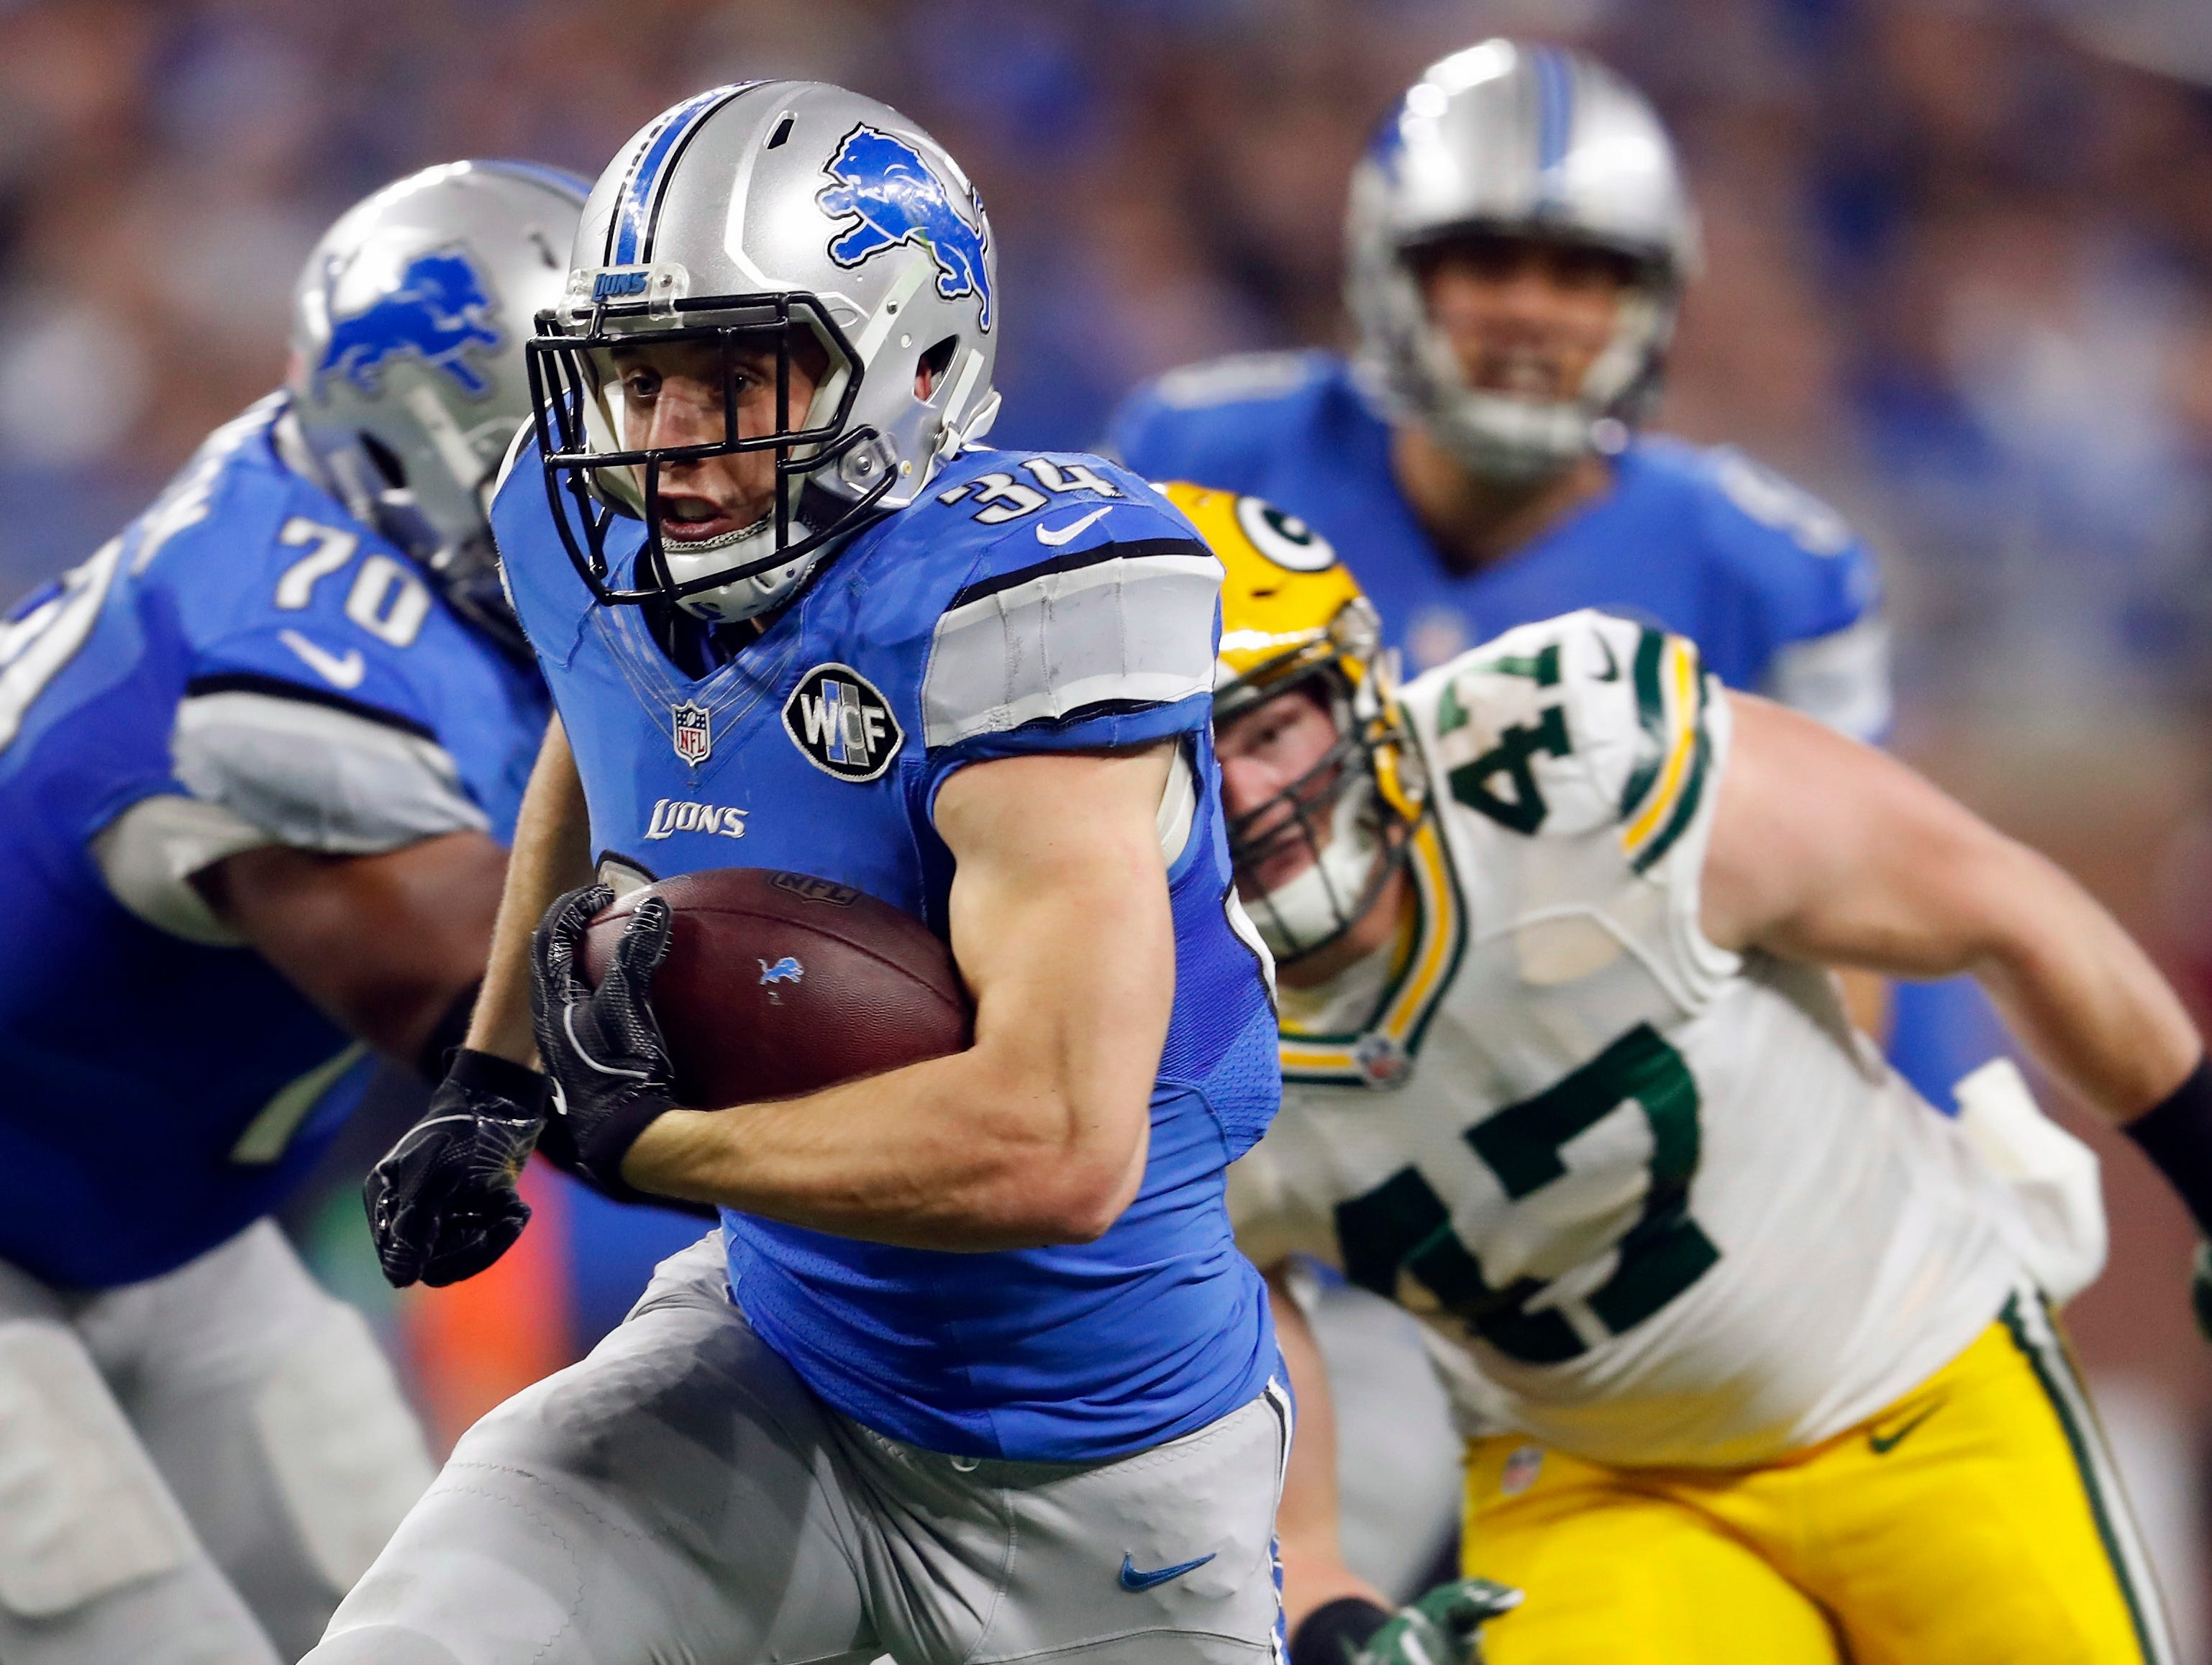 Detroit Lions fullback Zach Zenner rushes during the first half of an NFL football game against the Green Bay Packers, Sunday, Jan. 1, 2017, in Detroit. (AP Photo/Paul Sancya)